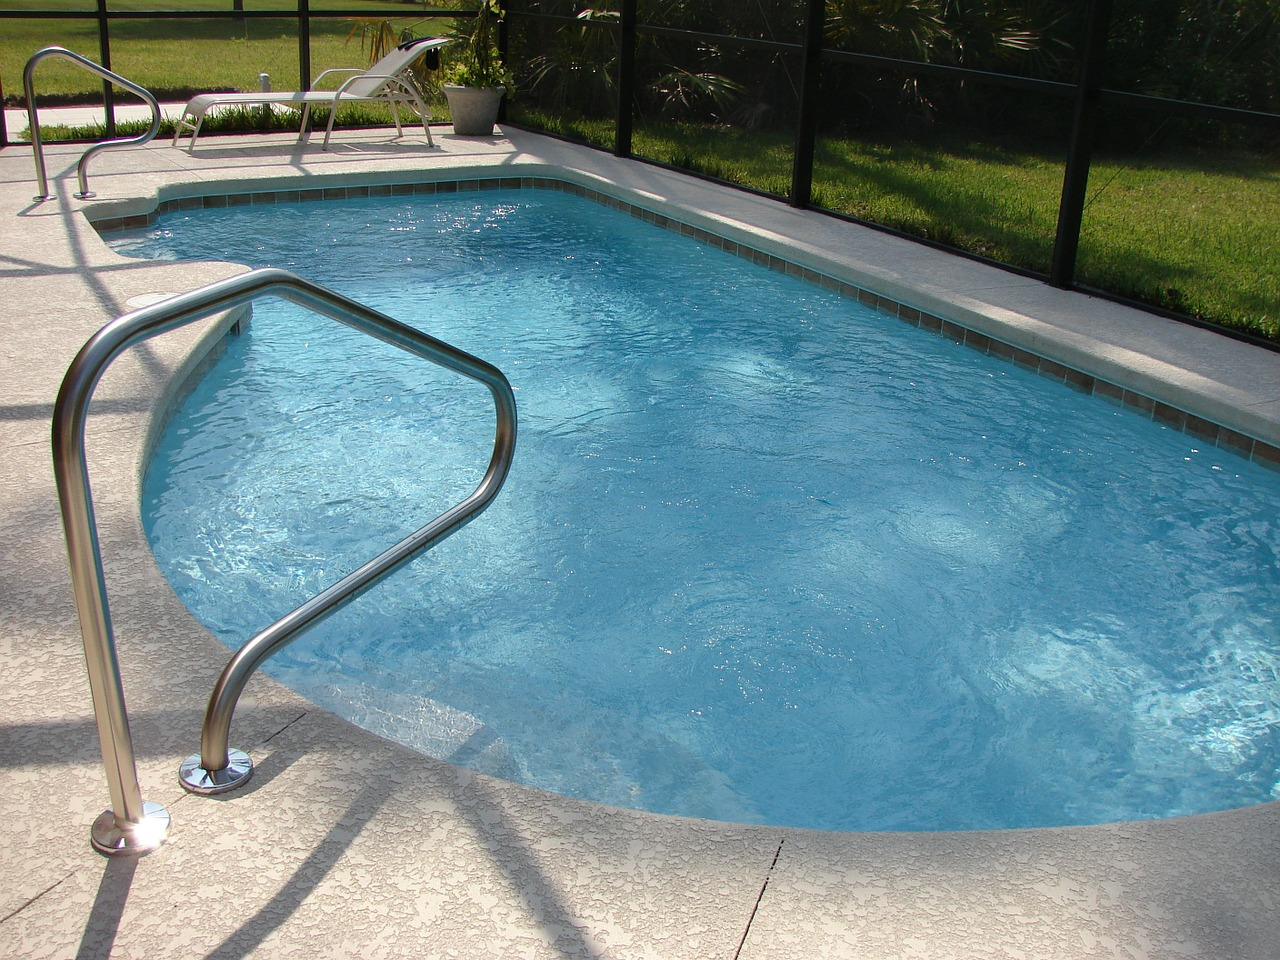 Deciding on a pool design is only the first step in the process. Finding a quality contractor to make the dream a reality is next.